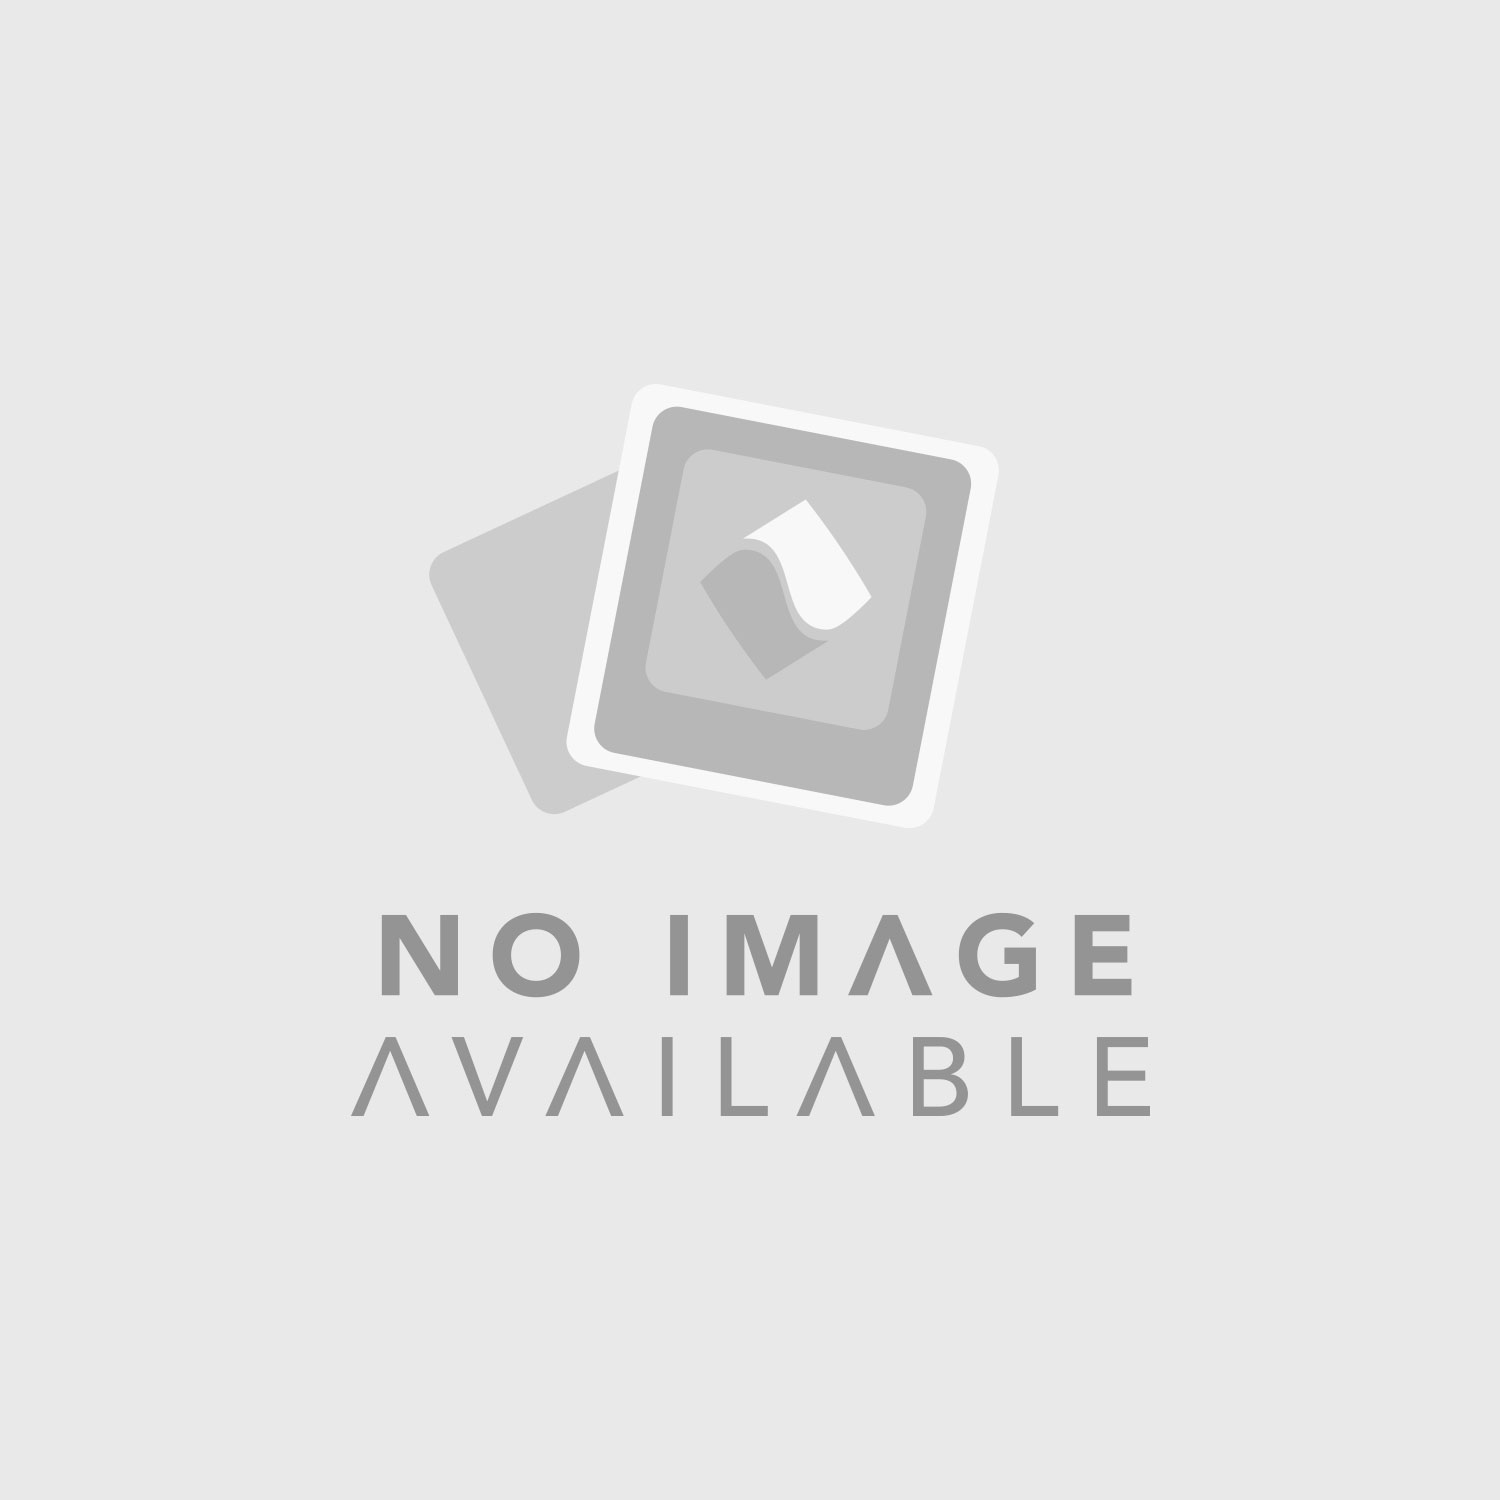 Strand Lighting 20BDMF 4 Way Barndoor (Black)